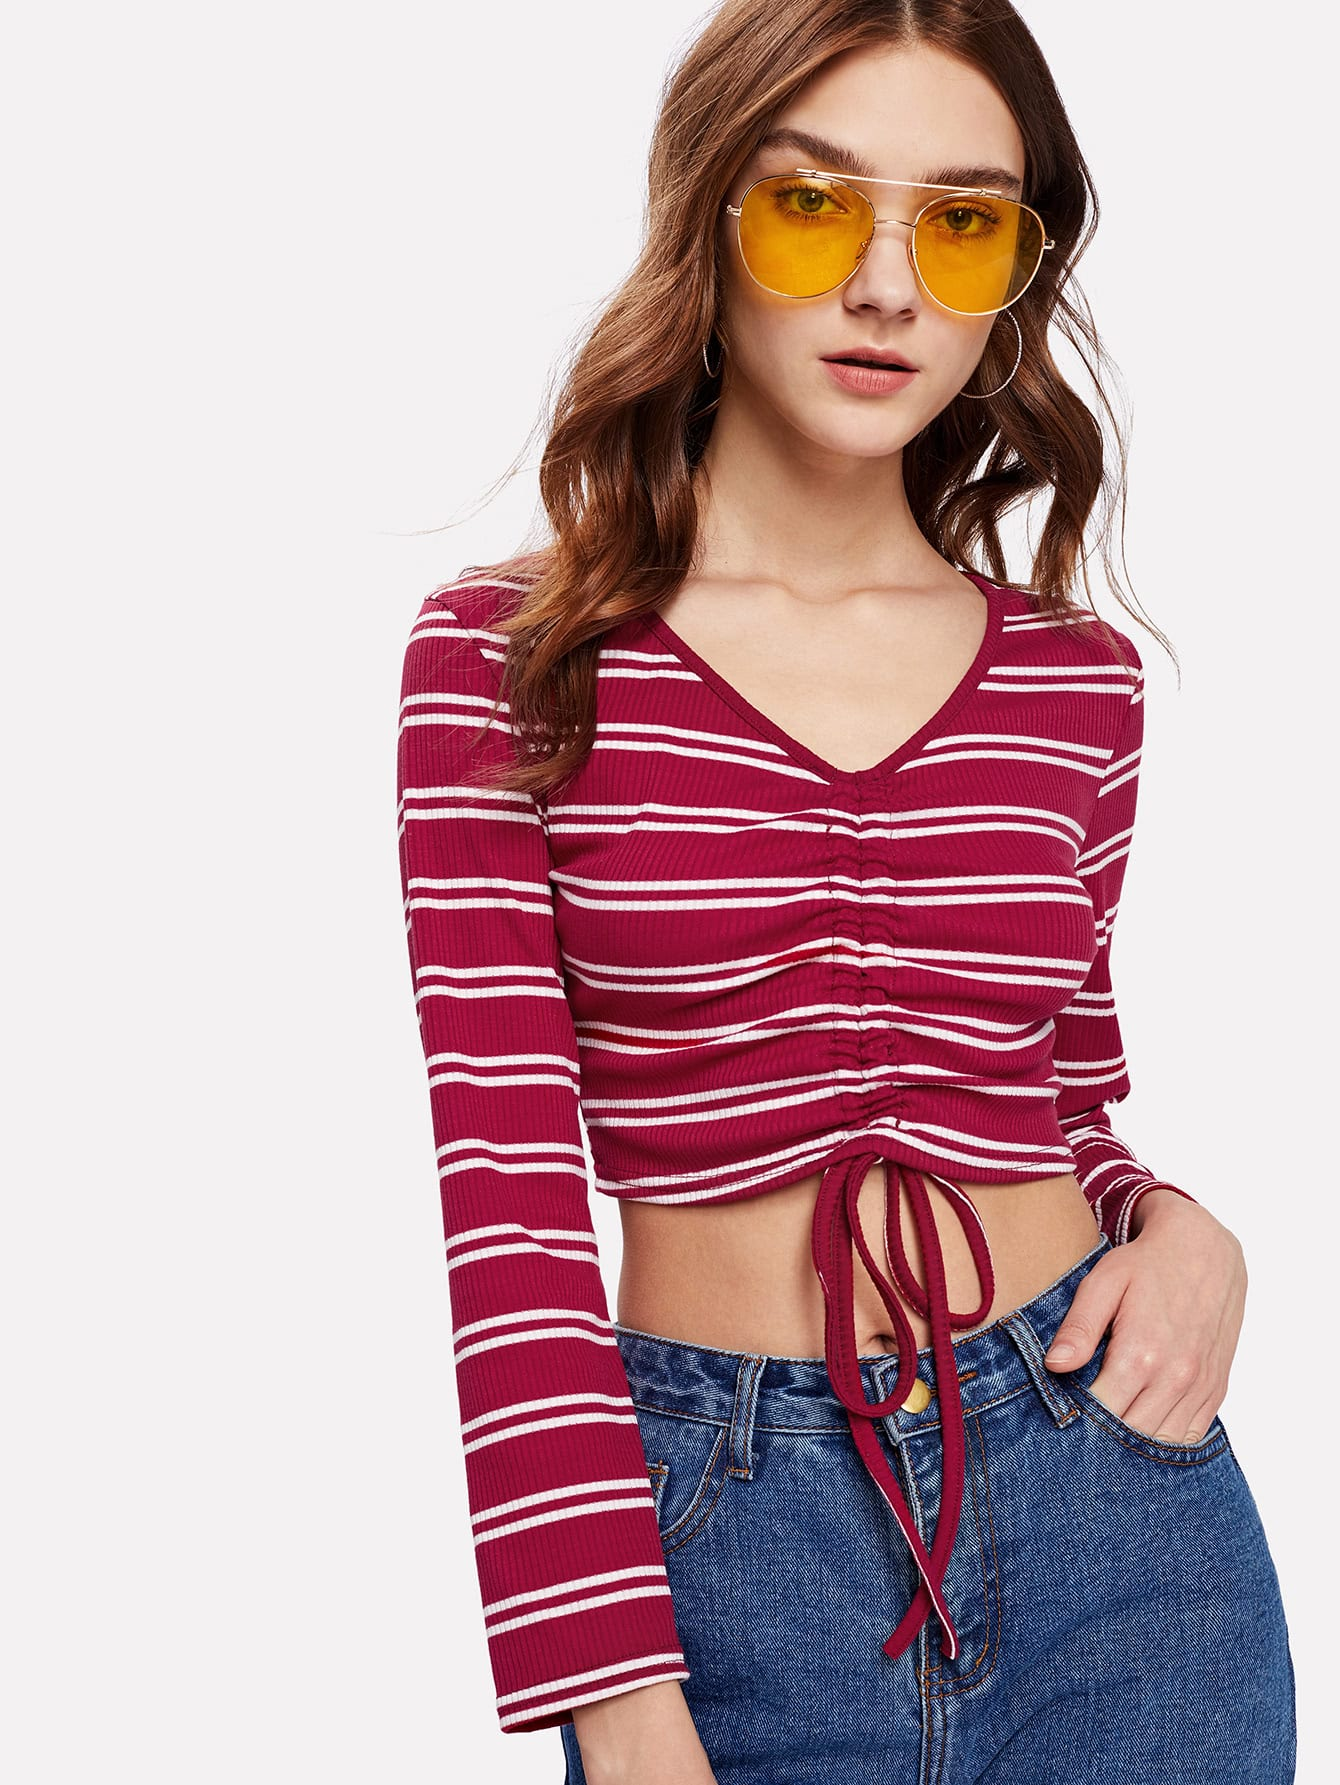 Drawstring Detail Striped Crop Tee striped tape detail crop tee